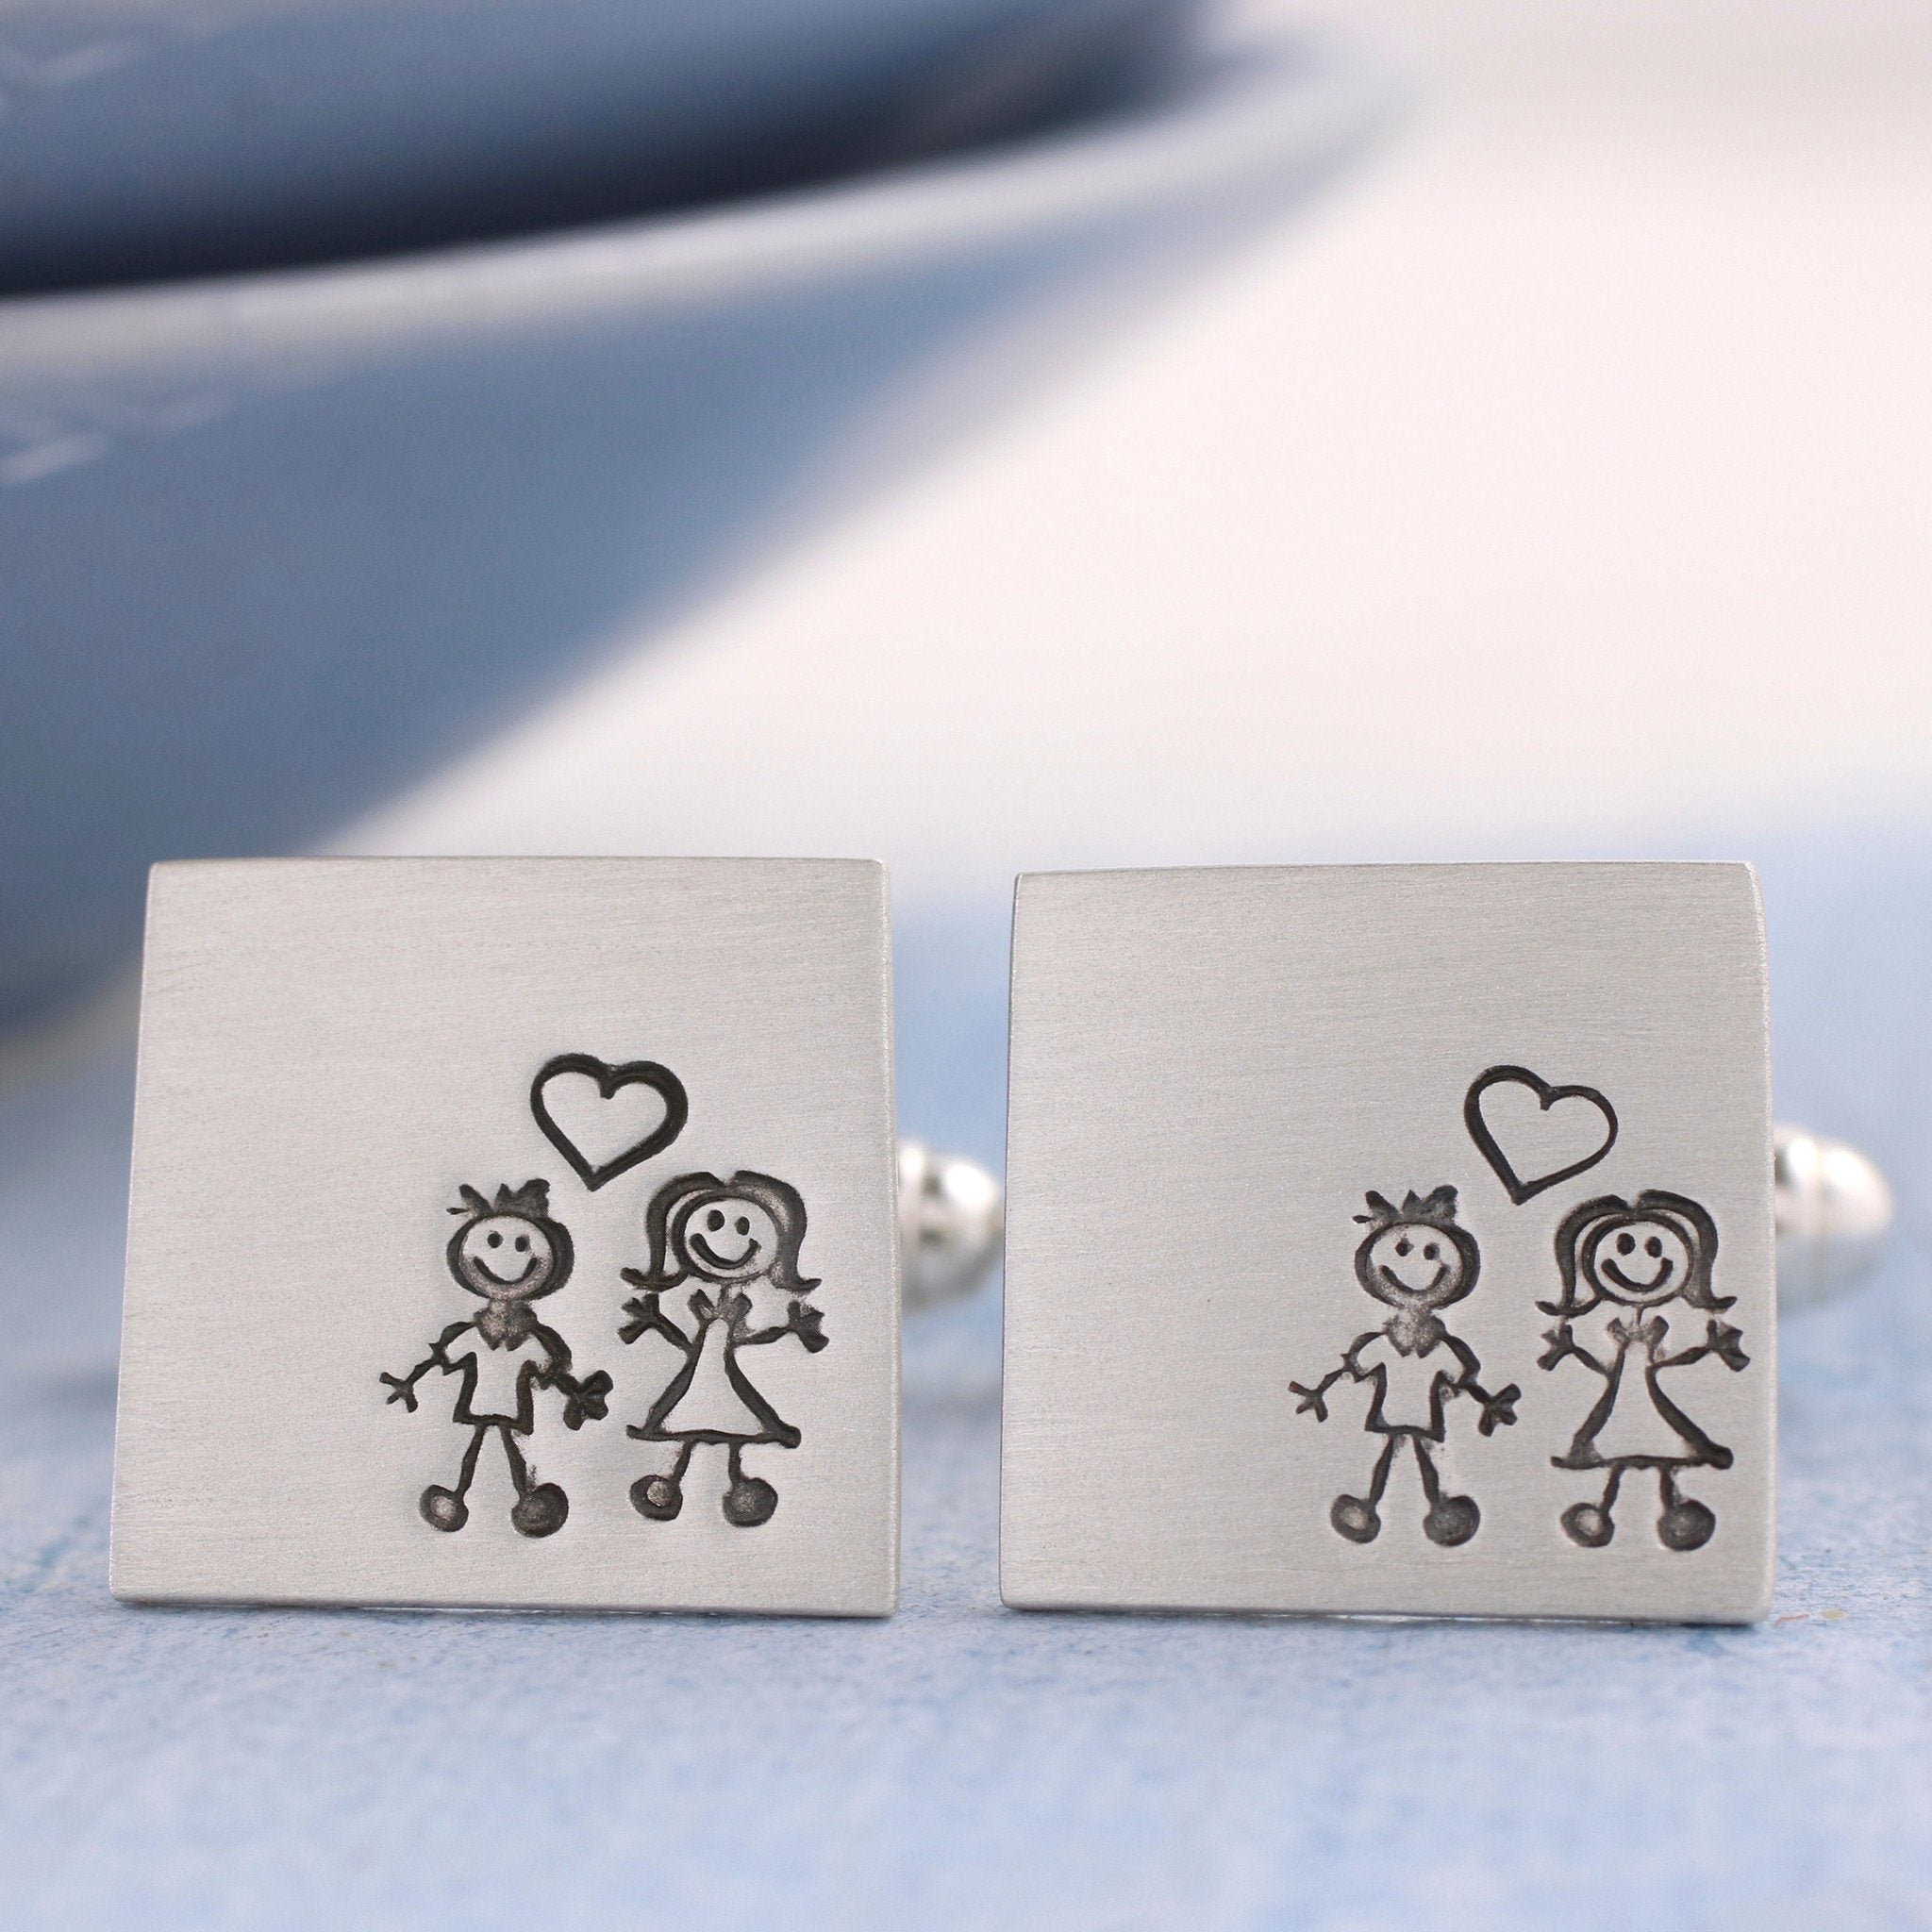 Boy and girl cufflinks